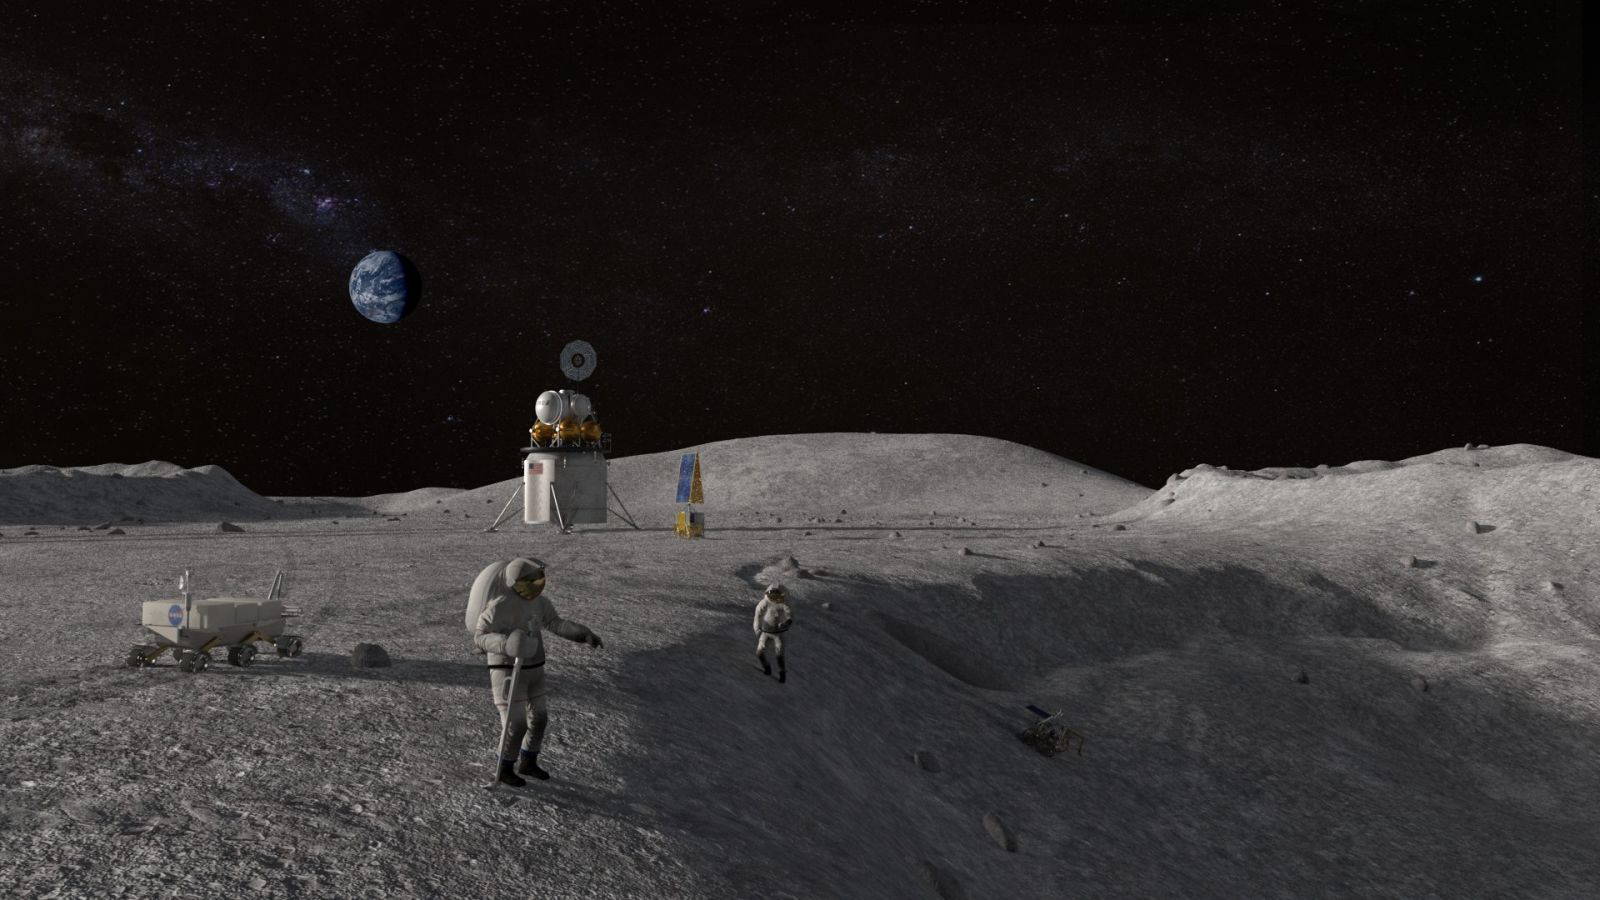 An illustration of NASA astronauts on the surface of the Moon. Image credit: NASA